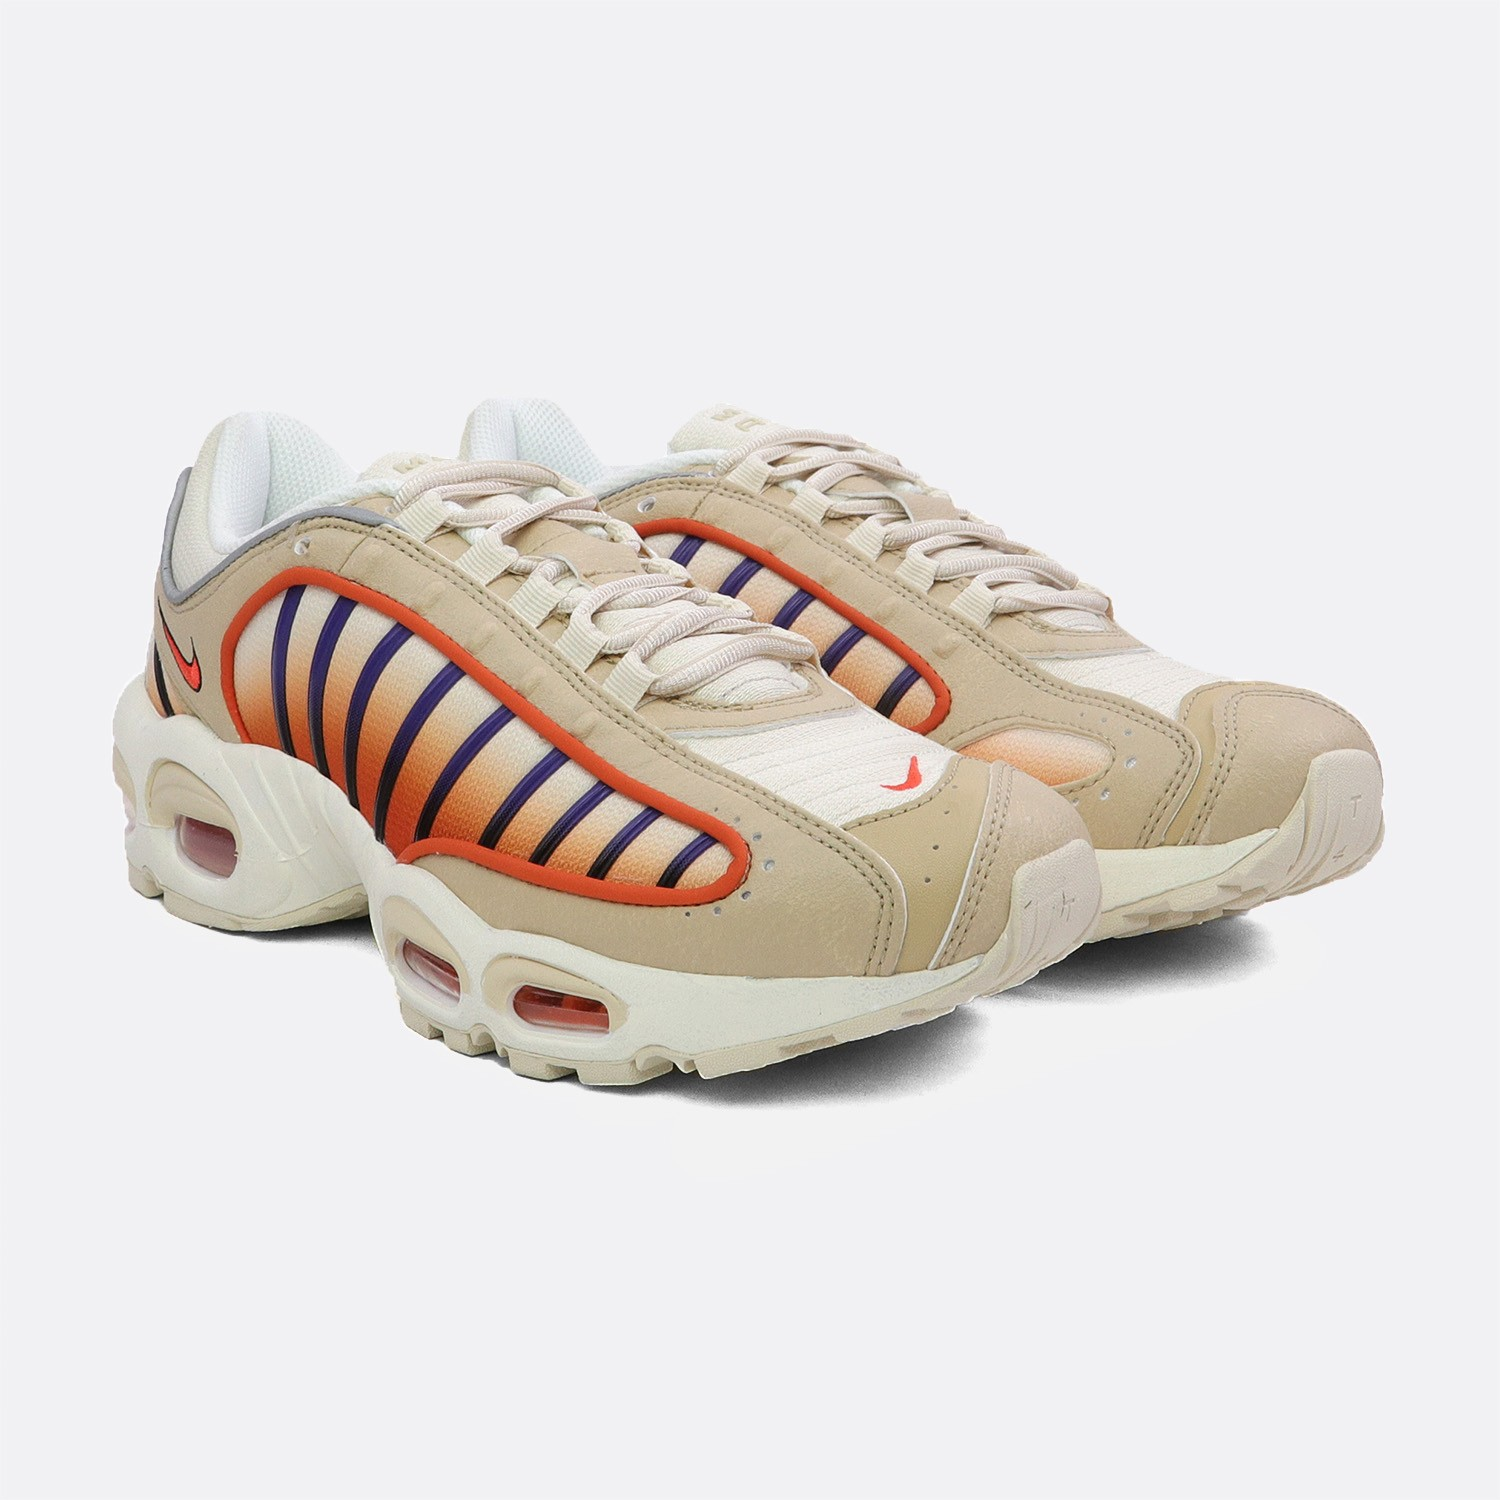 6a1b35e7 NIKE AIR MAX TAILWIND IV DESERT ORE / TEAM ORANGE AQ2567-200